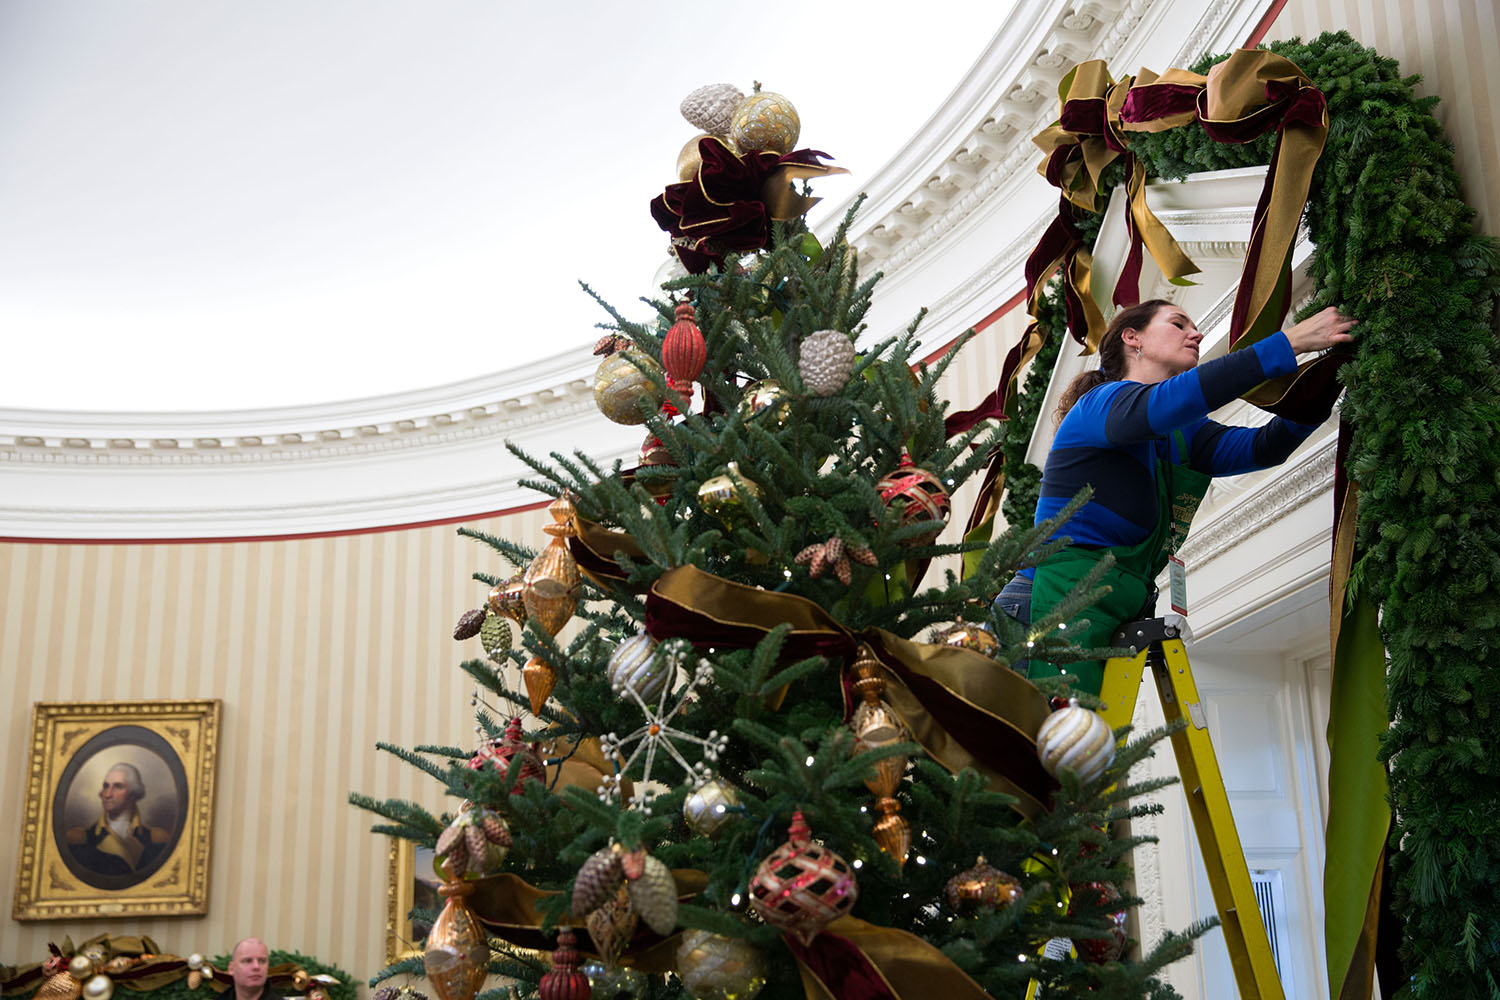 filewhite house volunteers hang christmas decorations in the oval officejpg - White House Christmas Decorations 2016